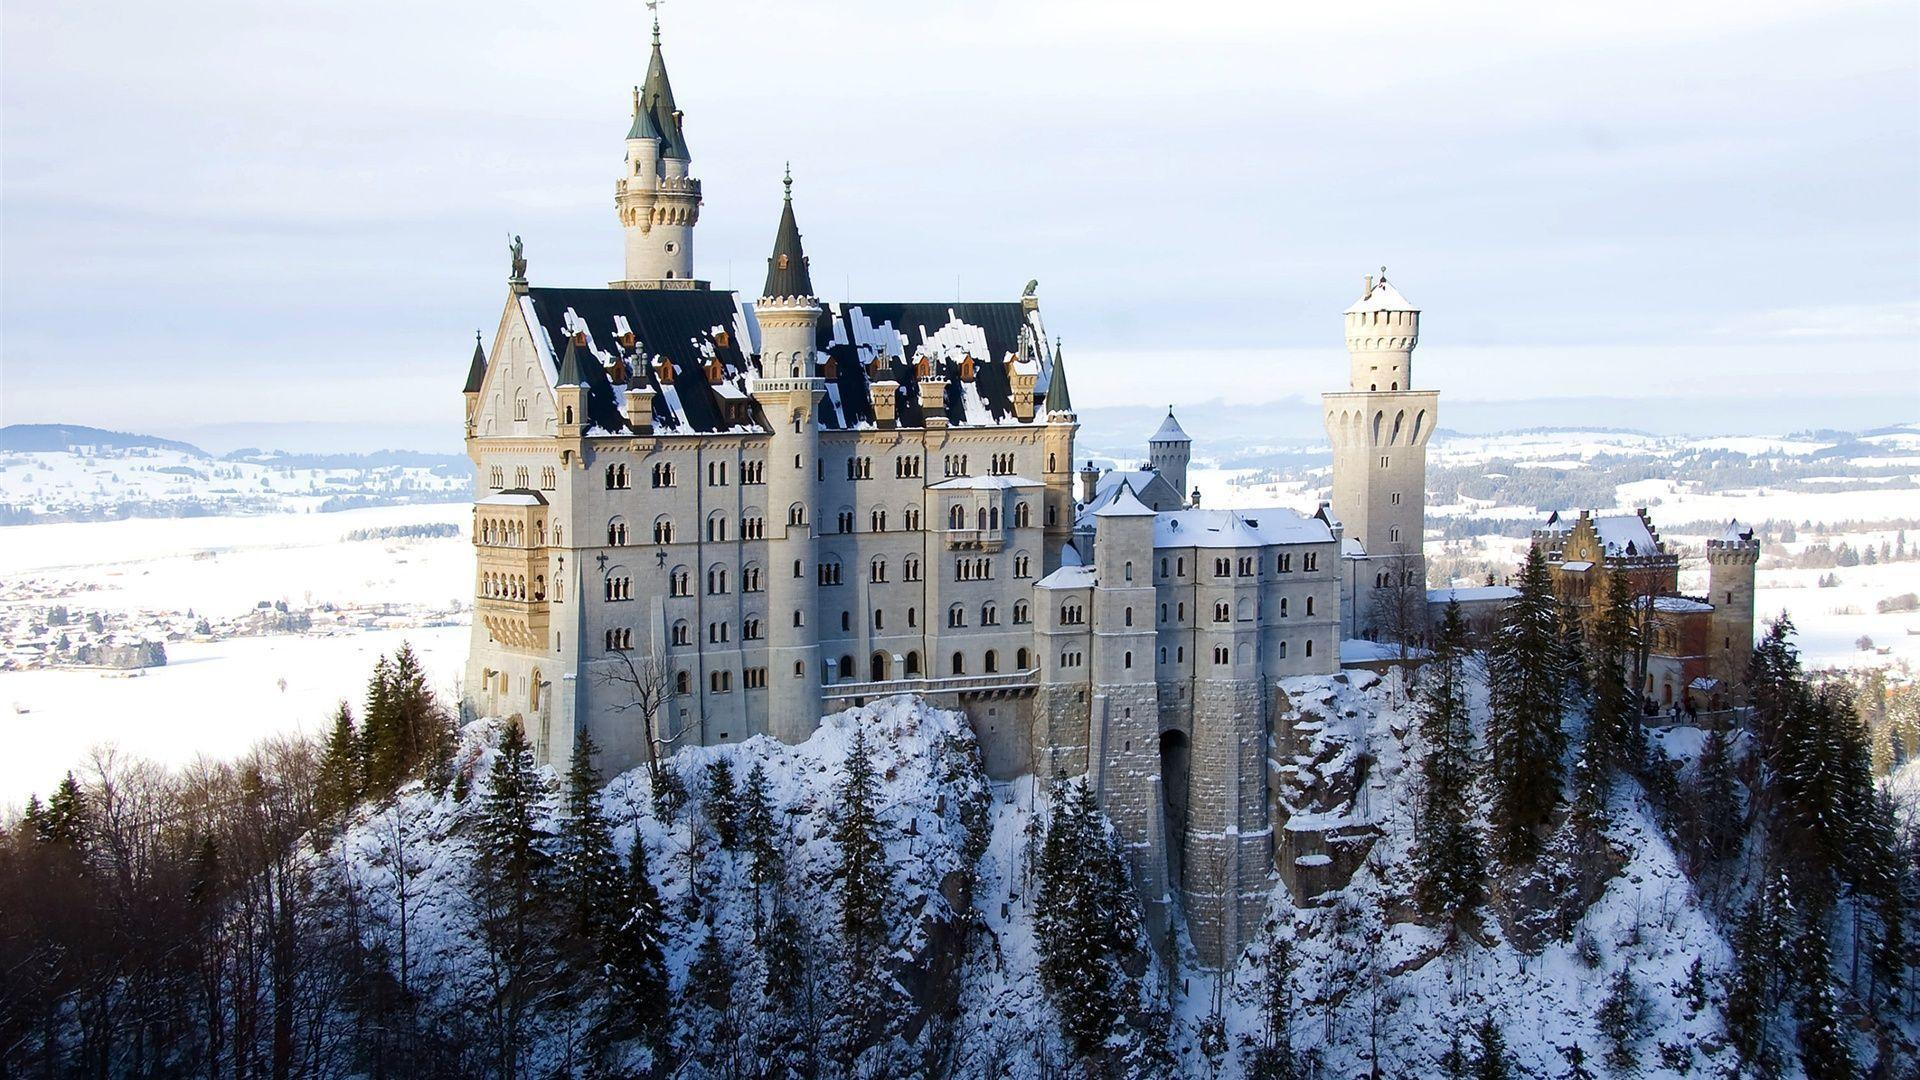 Bavaria castle winter snow Wallpaper | 1920x1080 resolution ...